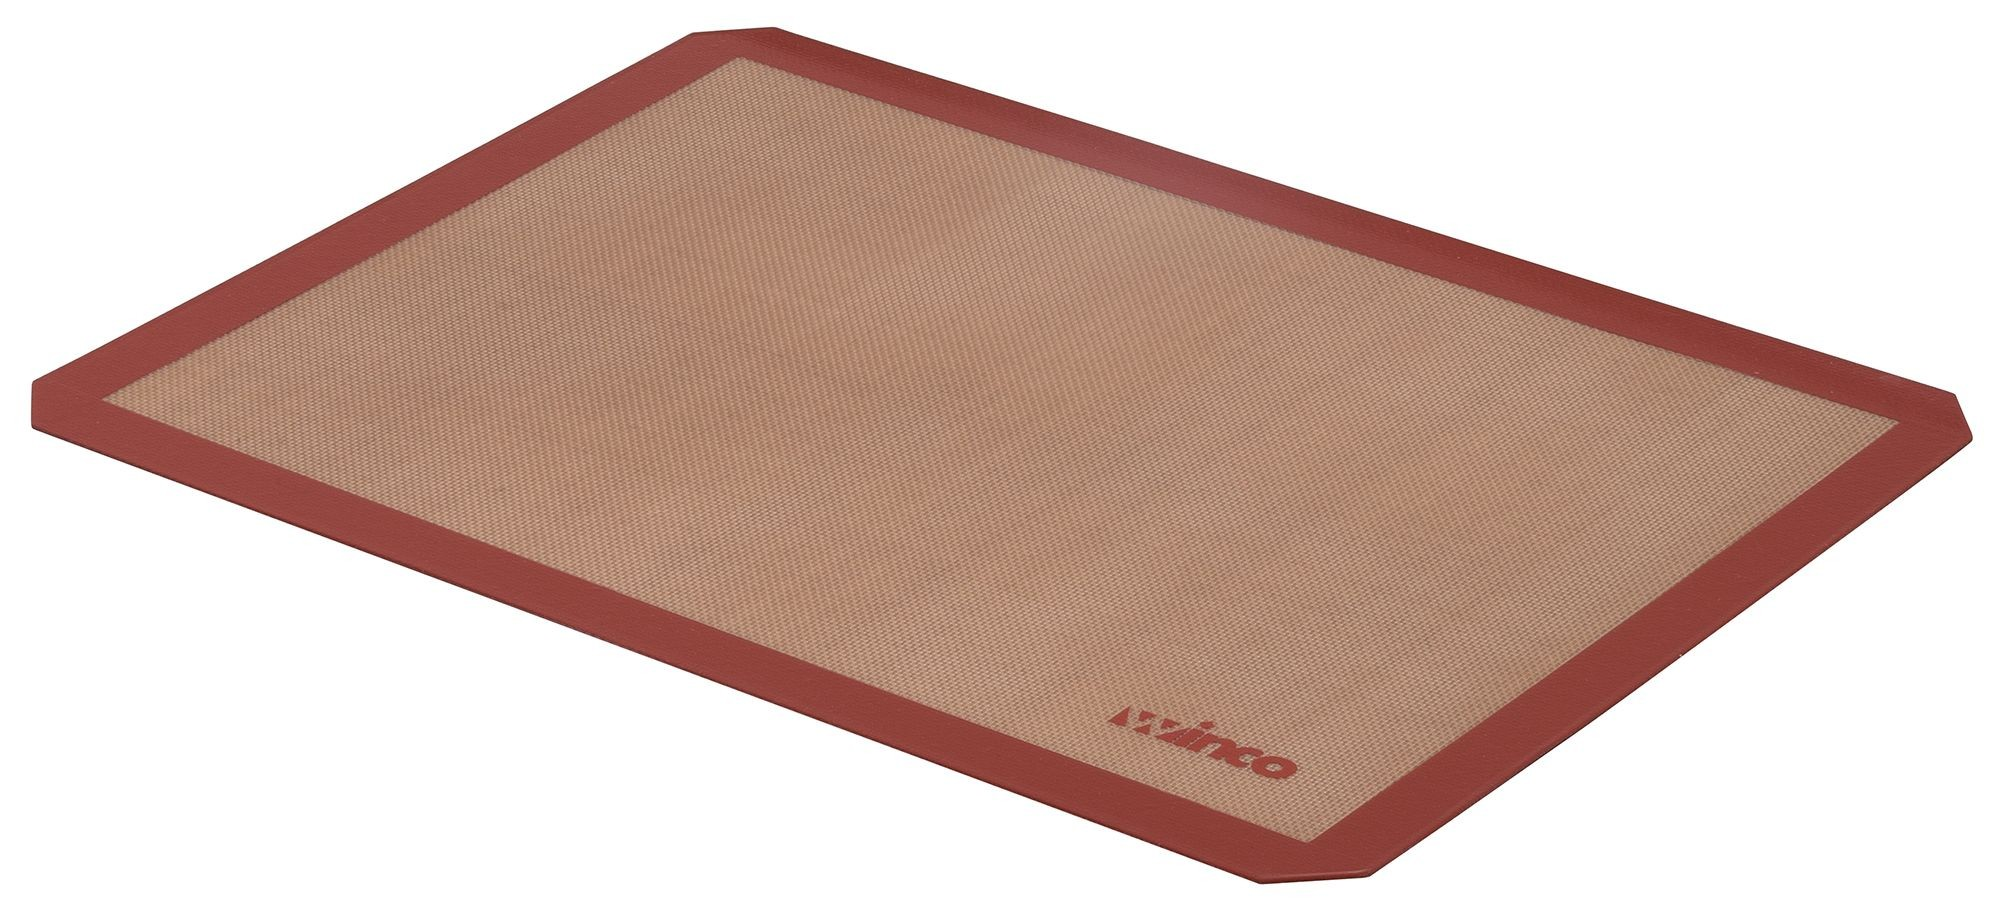 Winco Sbs 21 Silicone Square Baking Mat 15 3 8 Quot X 21 1 2